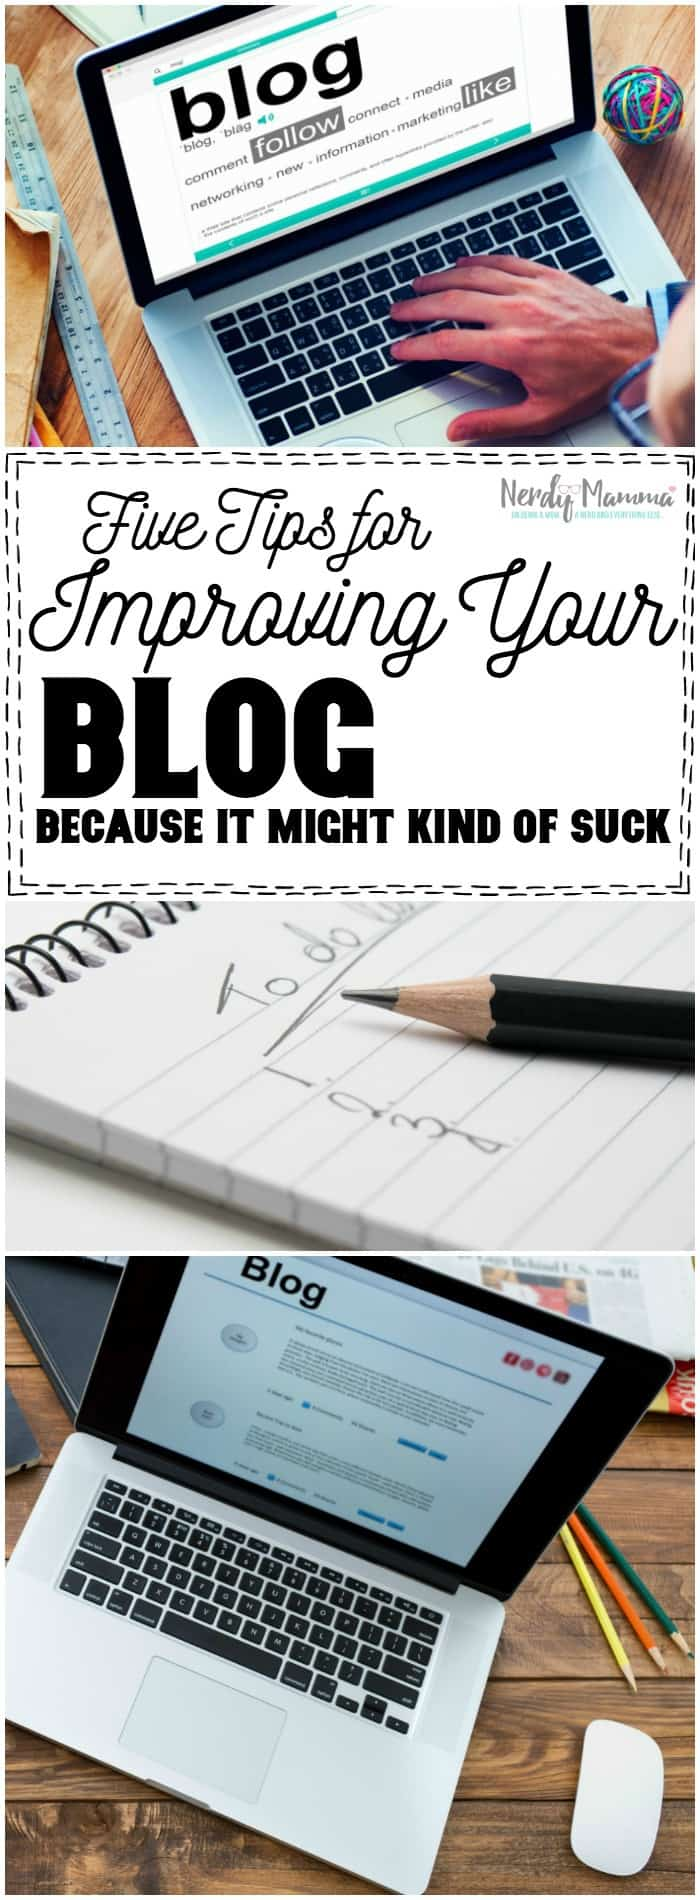 Oh, these tips for improving your blog are PERFECT for beginners. So simple...and even great reminders for blogs that have been around a while and are starting to struggle. I love it.